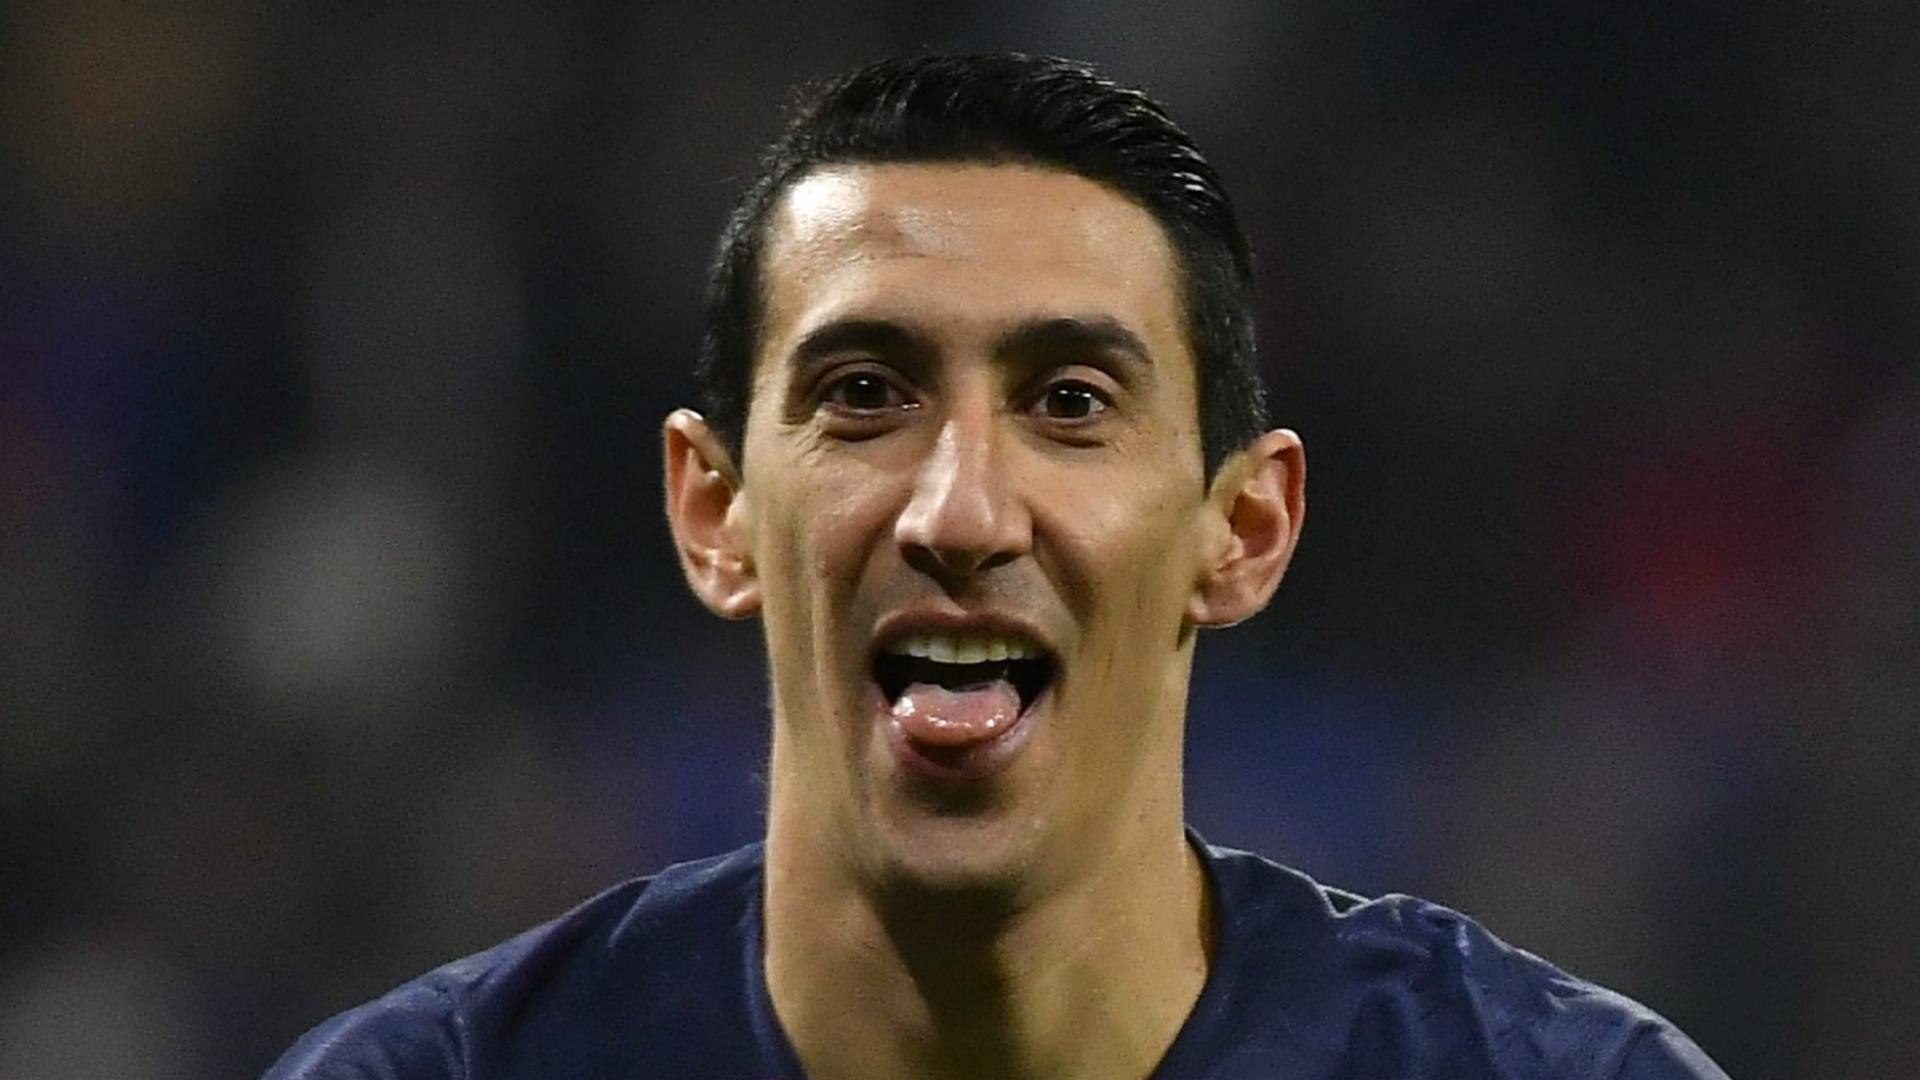 Angel DI MARIA scores sensational free kick in PSG win